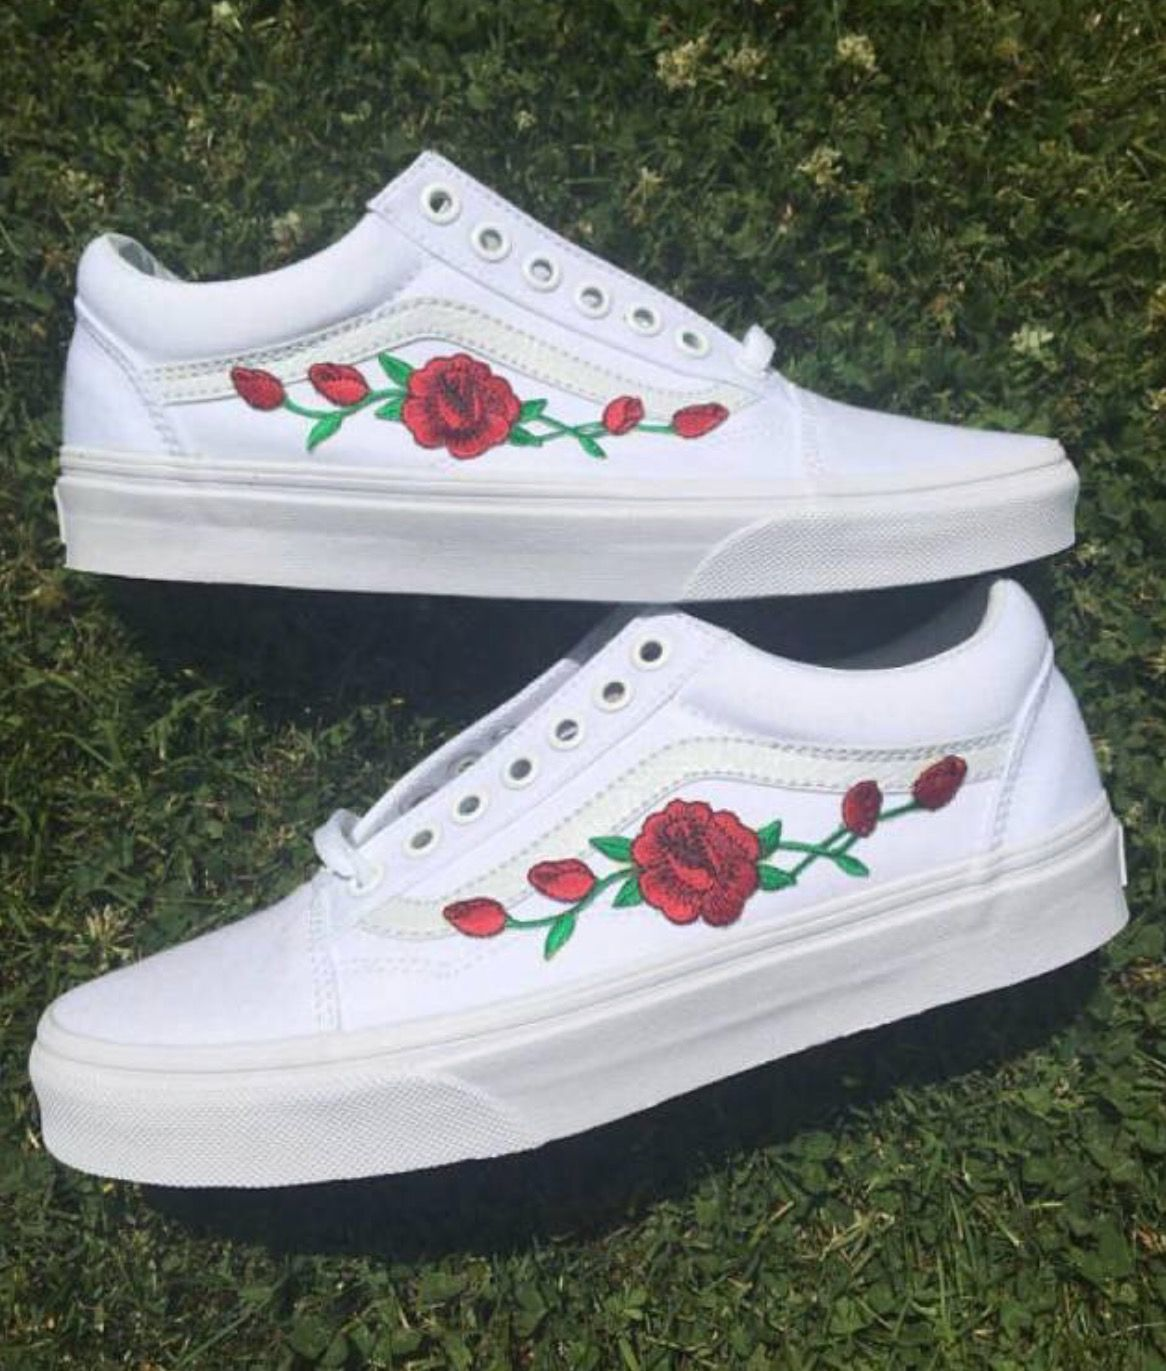 1fb4e4c8fa White Vans Old Skool Custom Rose Embroidered Shoes-Vans Rose Shoes Floral  Vans-Custom Vans Rose Vans Old Skool Vans-Men Women Youth Sizes • Shoe  Old  Skool ...